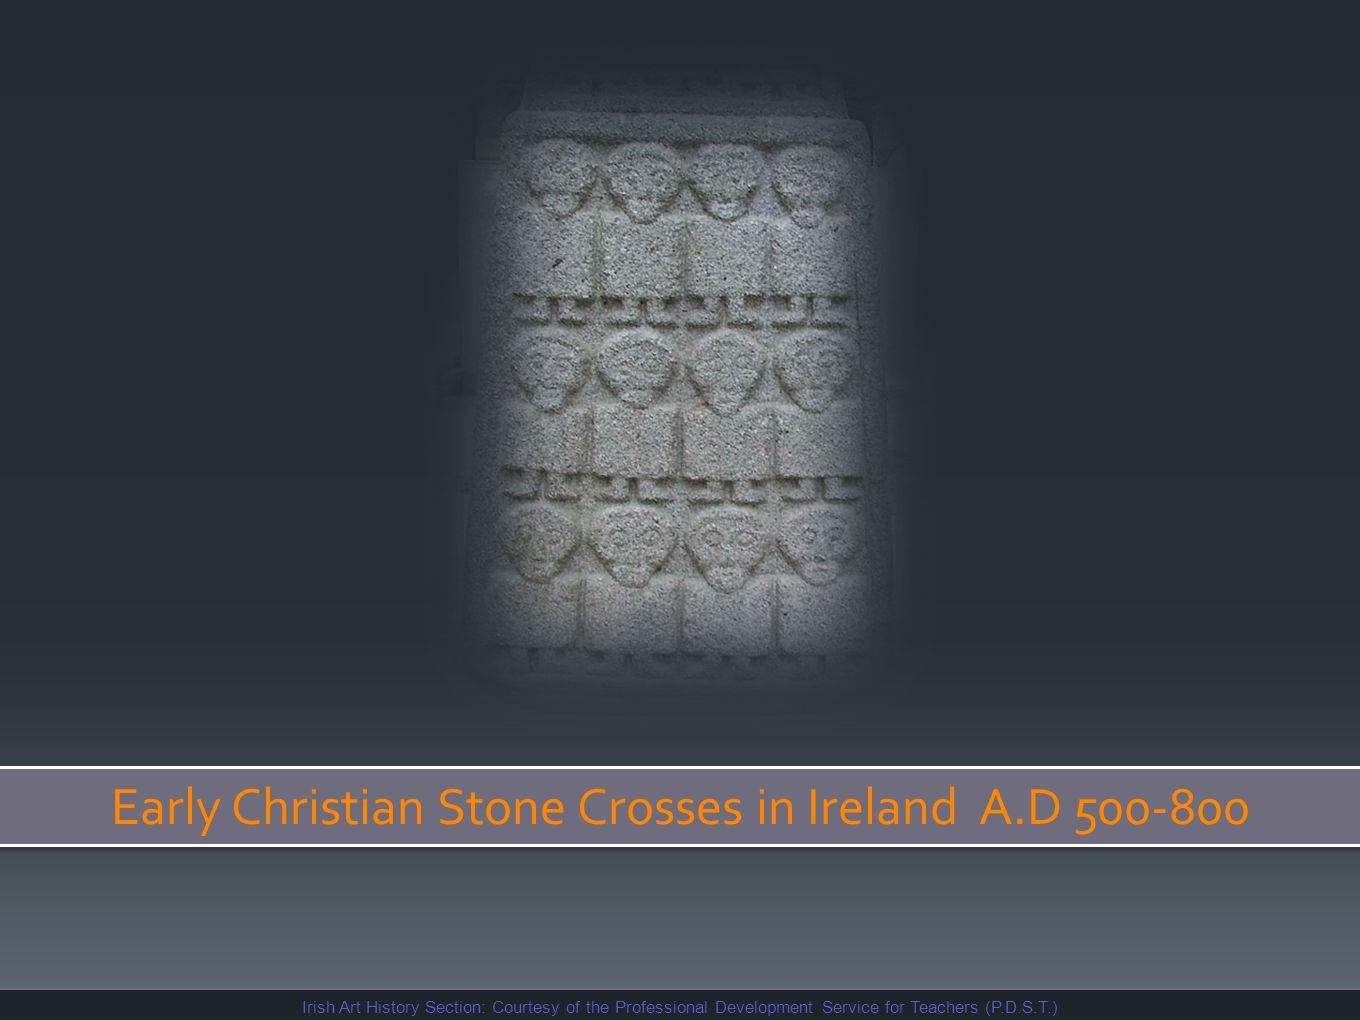 Early Christian Stone Crosses in Ireland A.D 500-800 Irish Art History Section: Courtesy of the Professional Development Service for Teachers (P.D.S.T.)